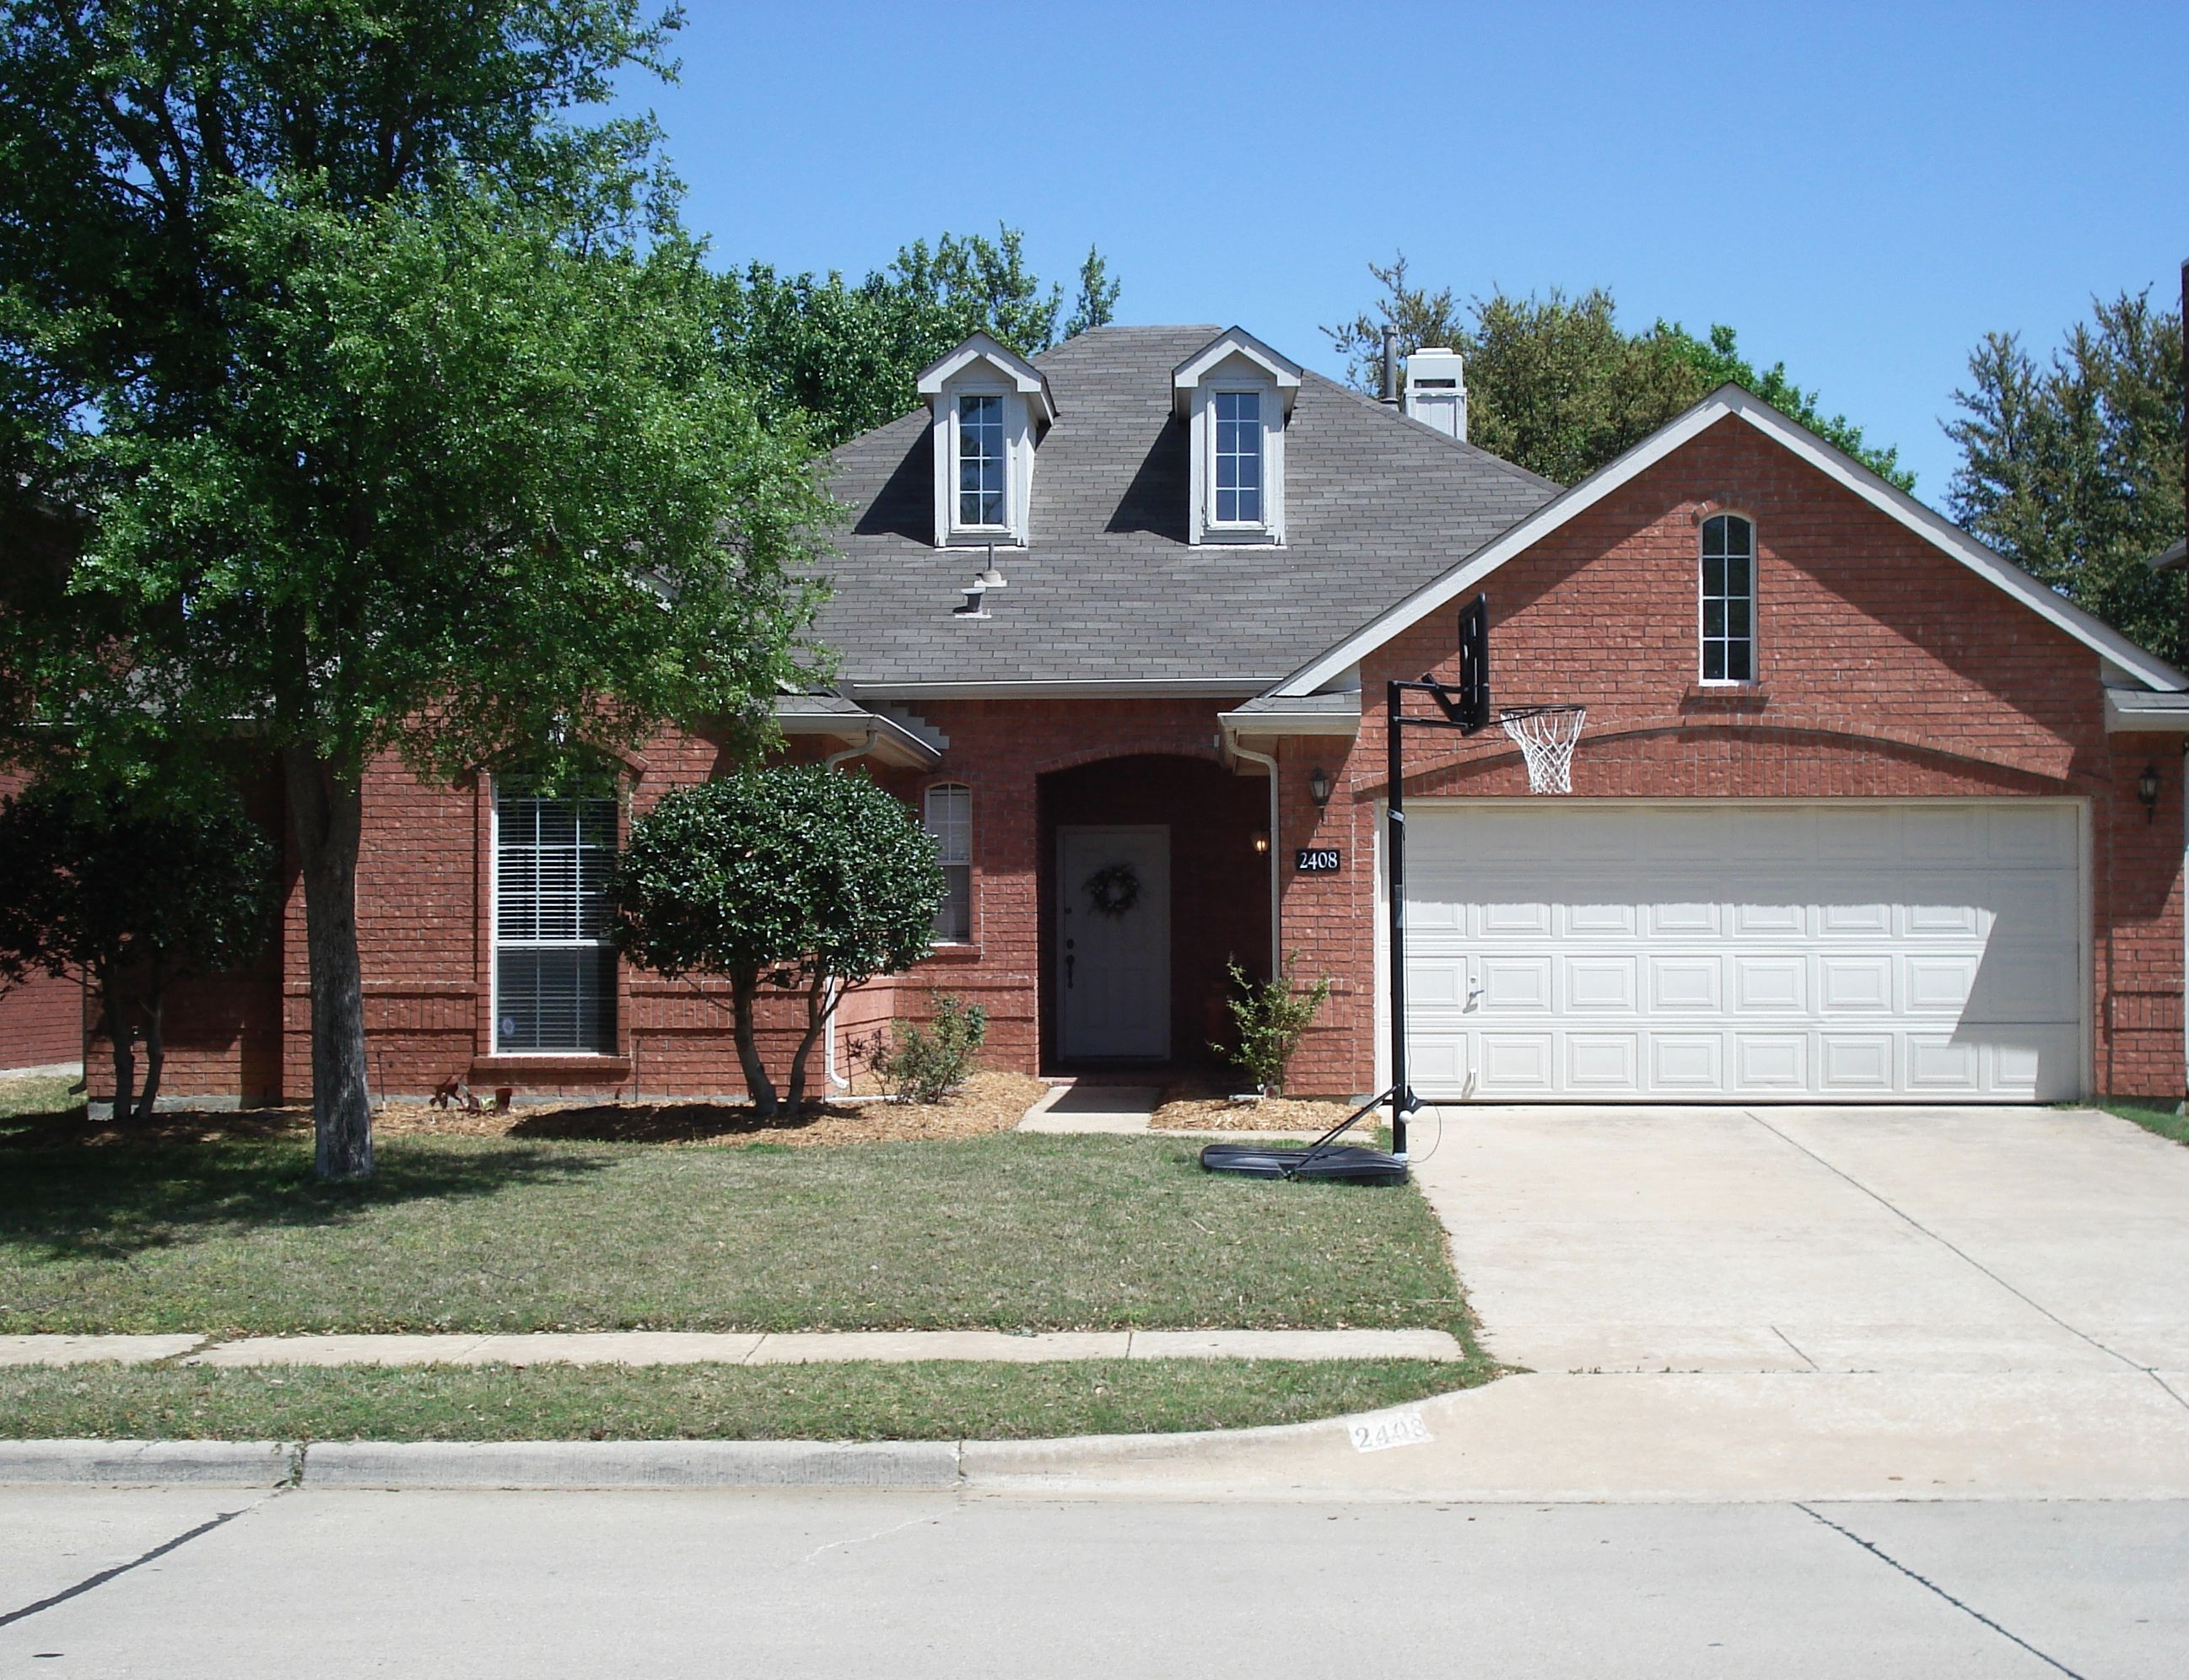 Search all homes for sale in Flower Mound, TX Home